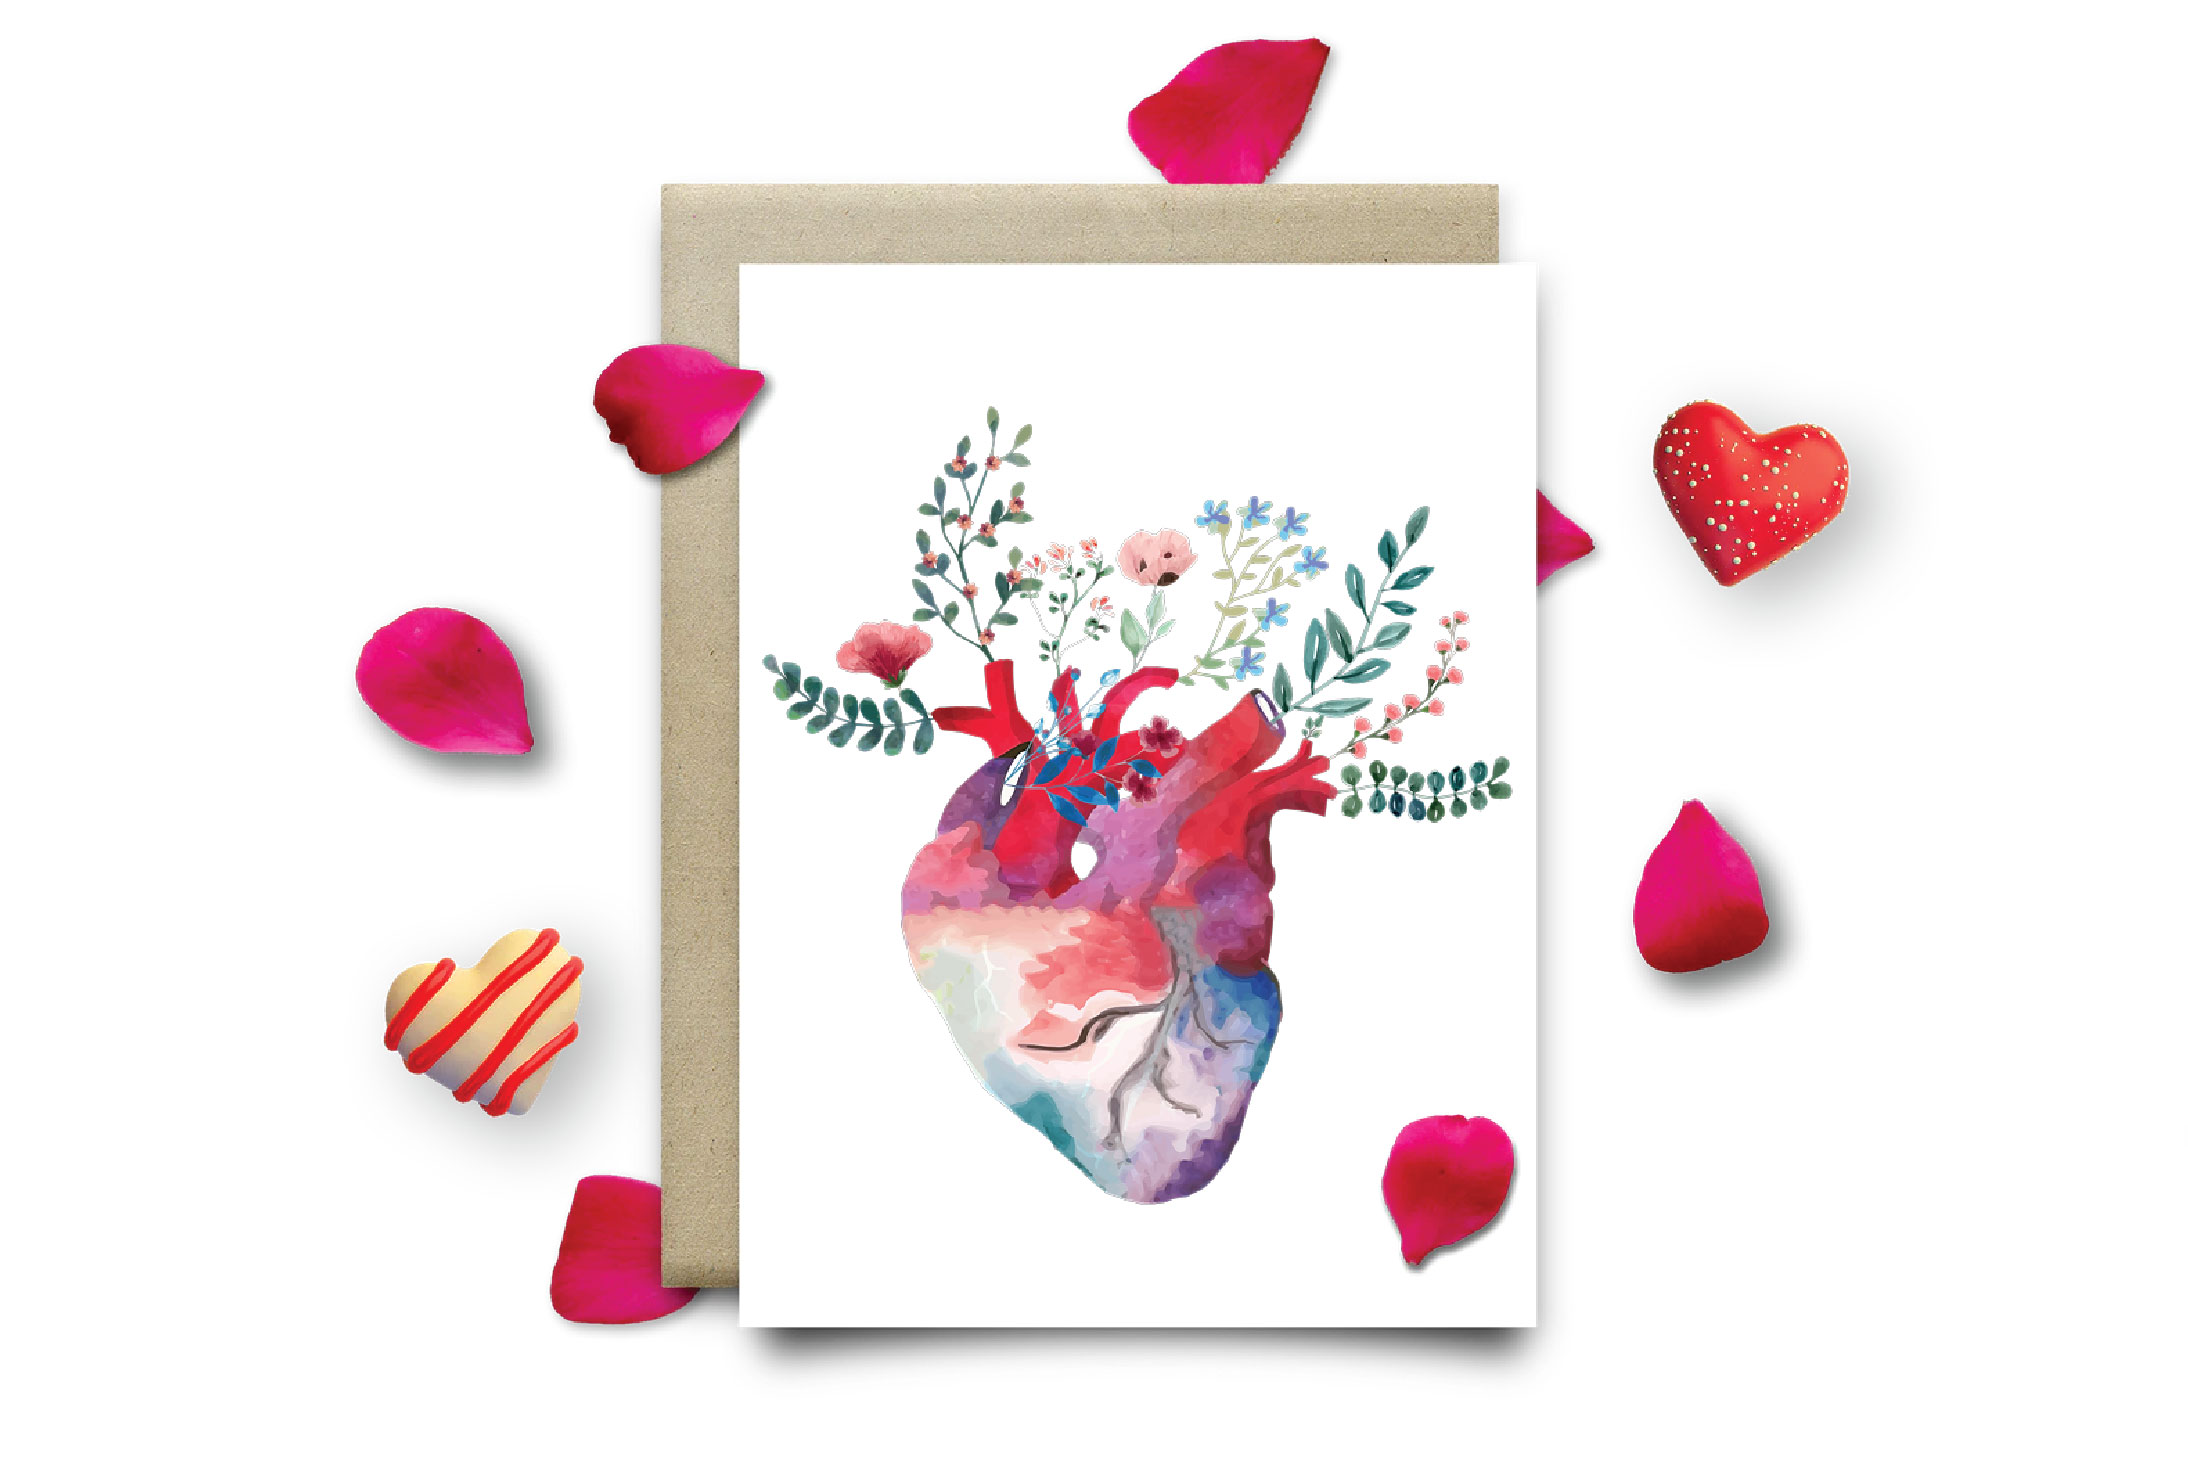 Flowering anatomical heart Valentine's day card design png. example image 8